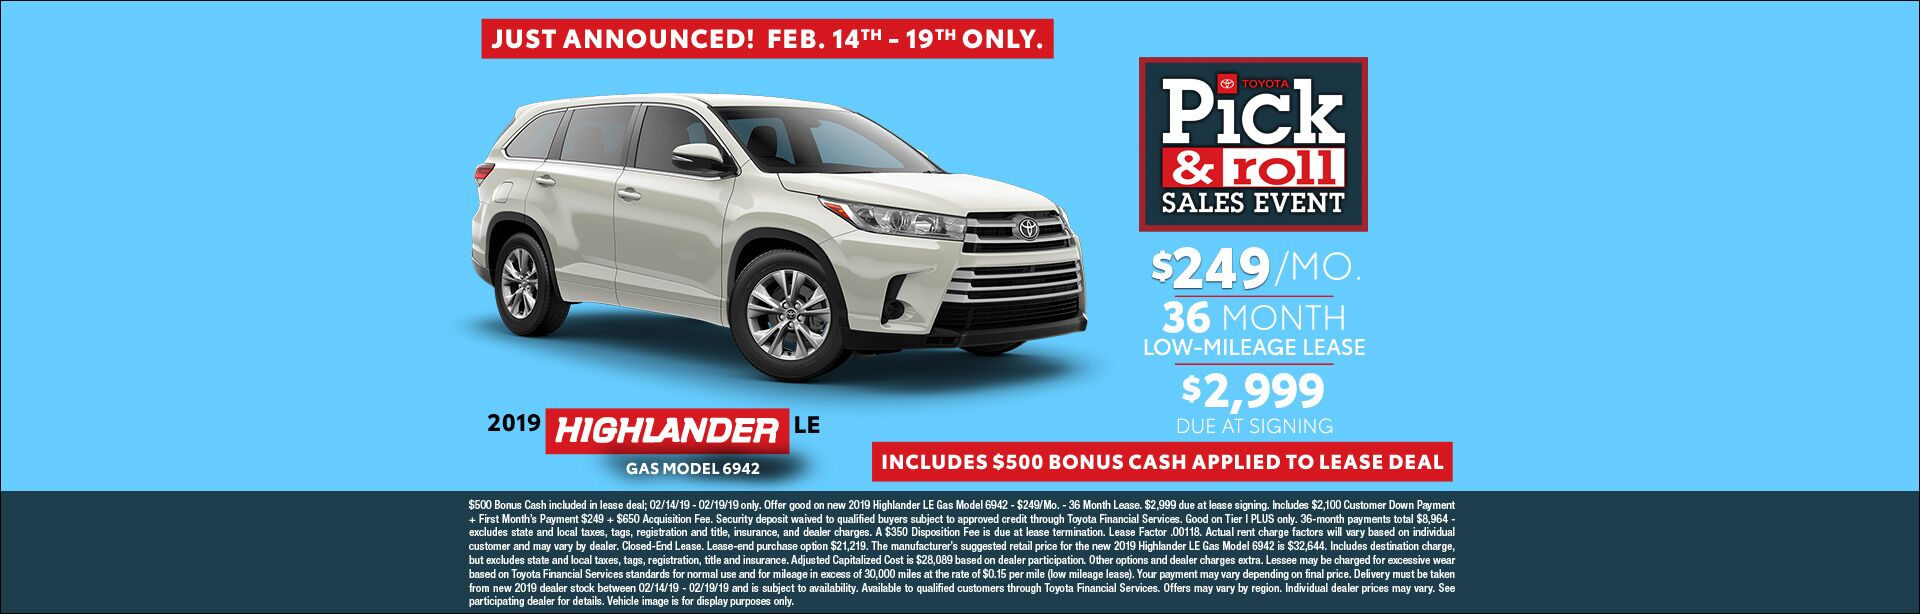 Presidents Day Highlander Lease Feb 2019